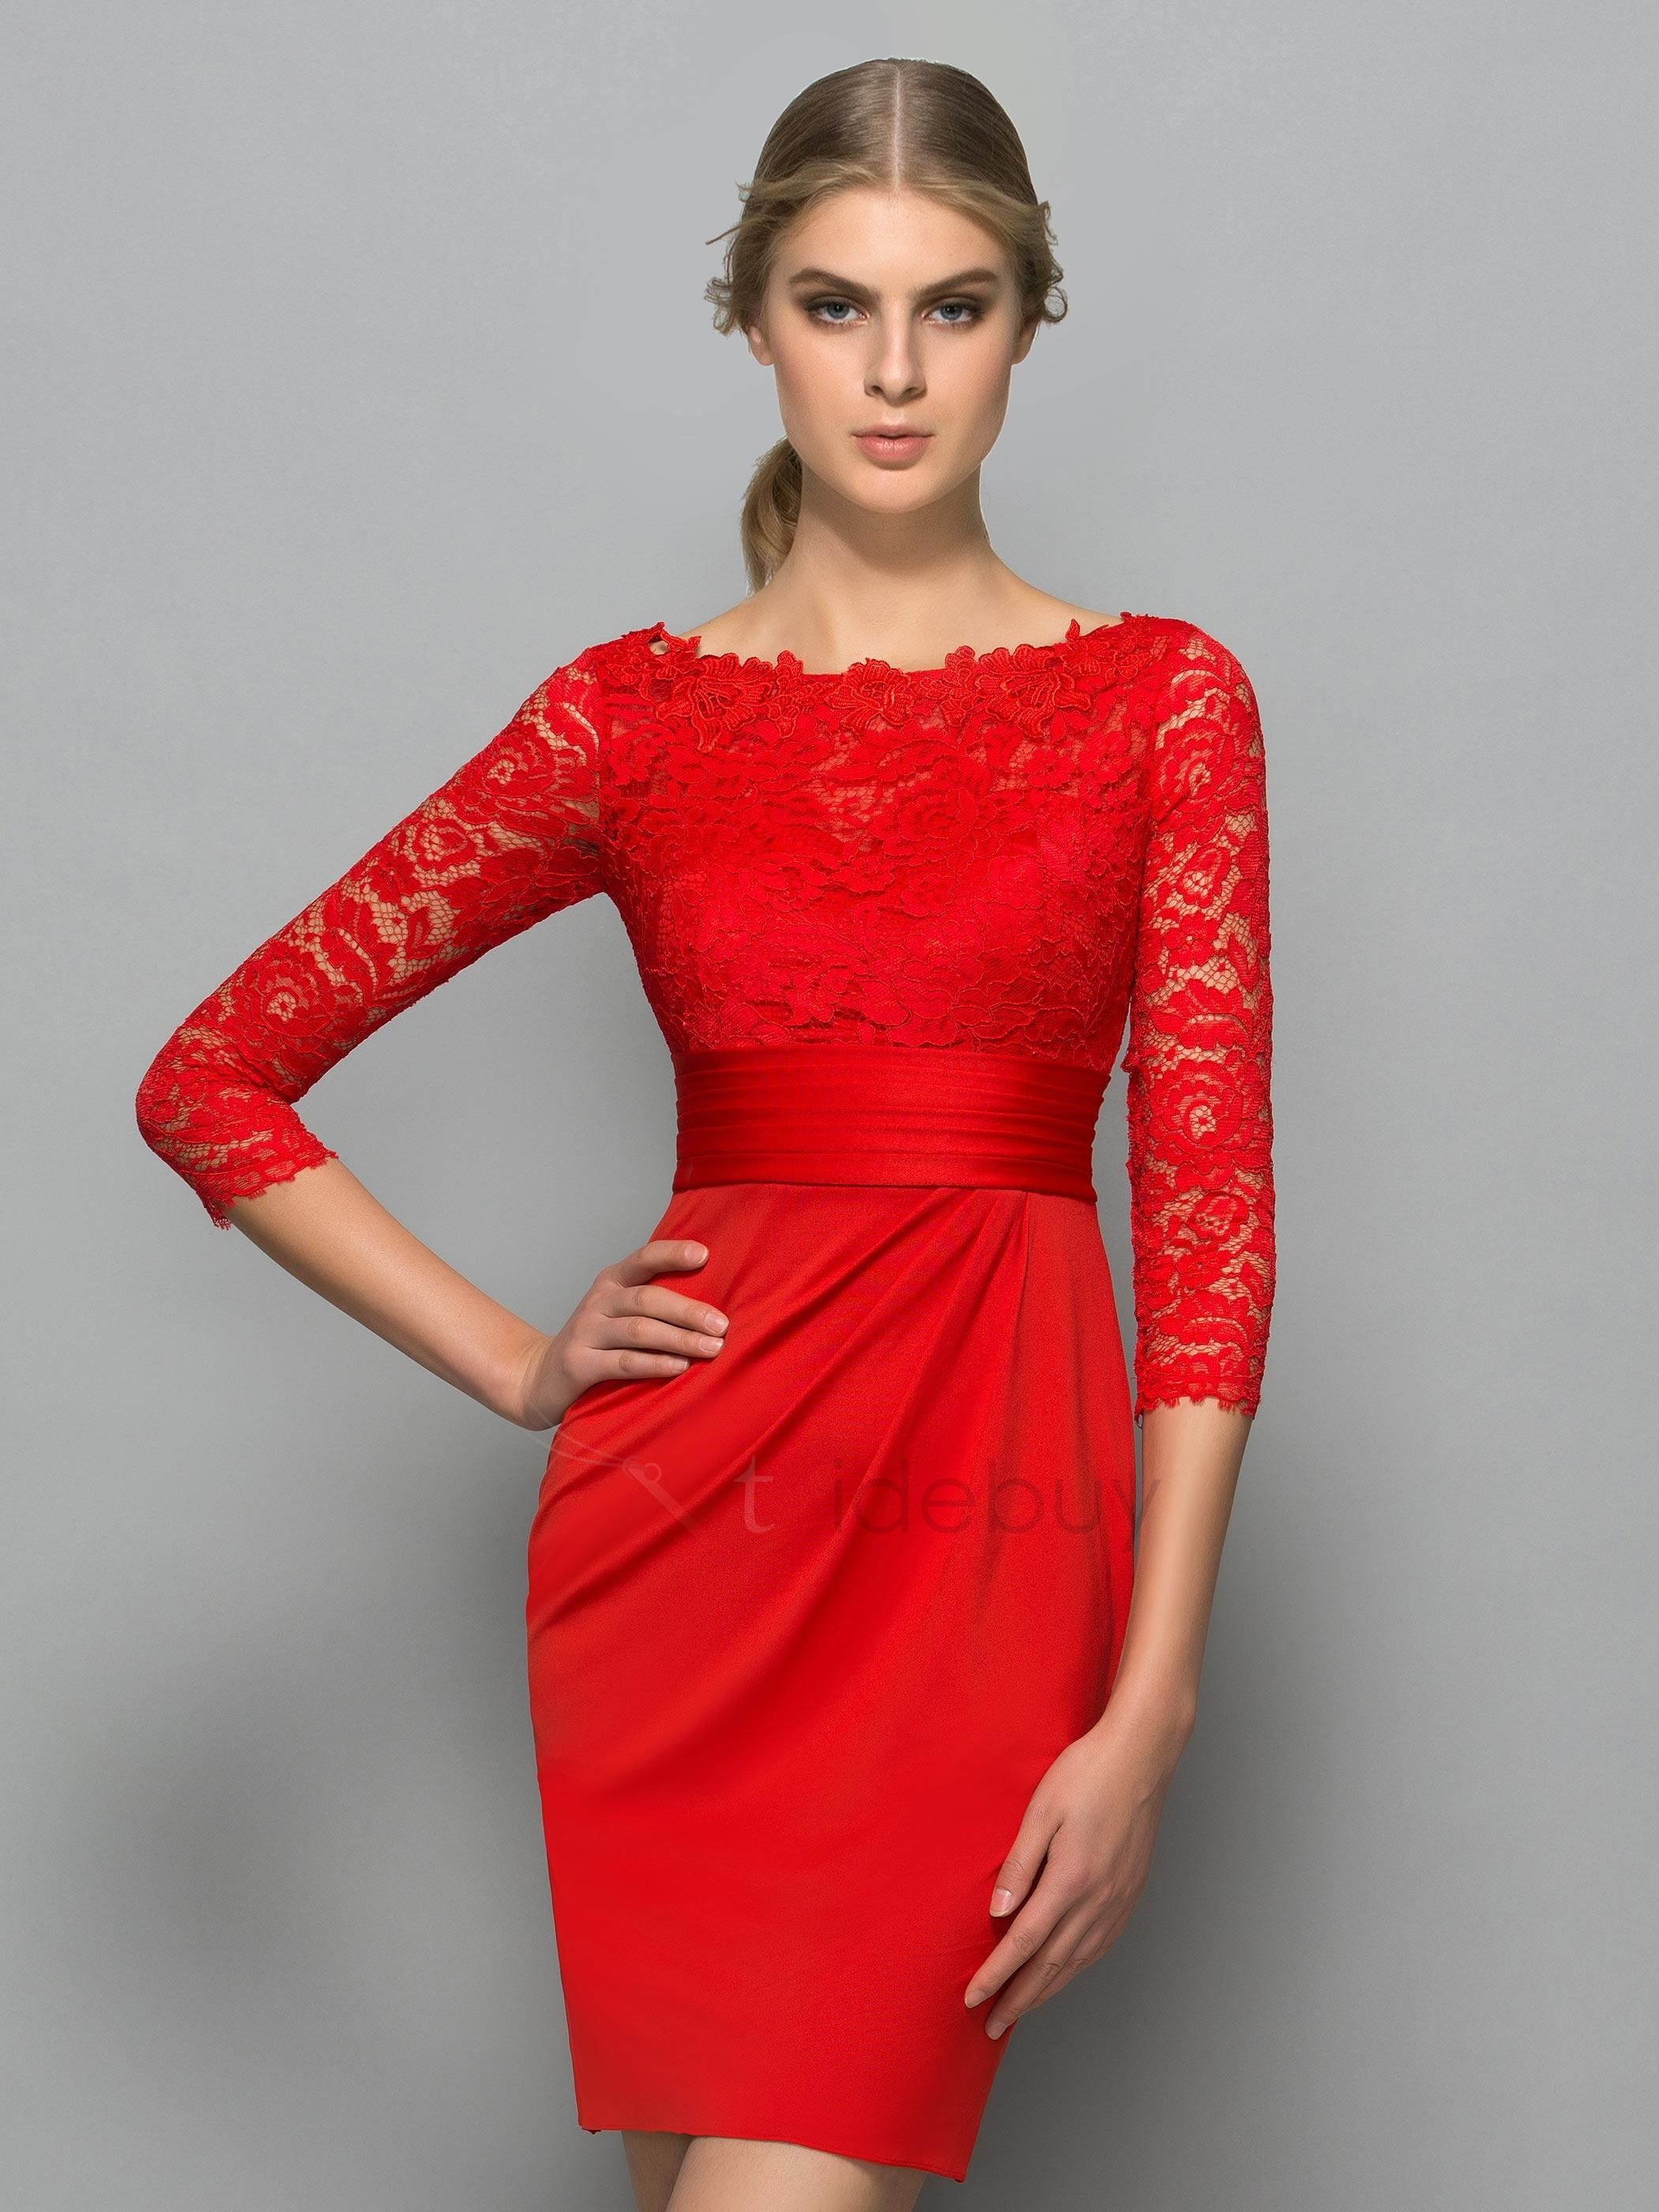 3df0e178a901 Tidebuy.com Offers High Quality Classy Bateau Neck 3/4 Length Sleeve Red  Lace